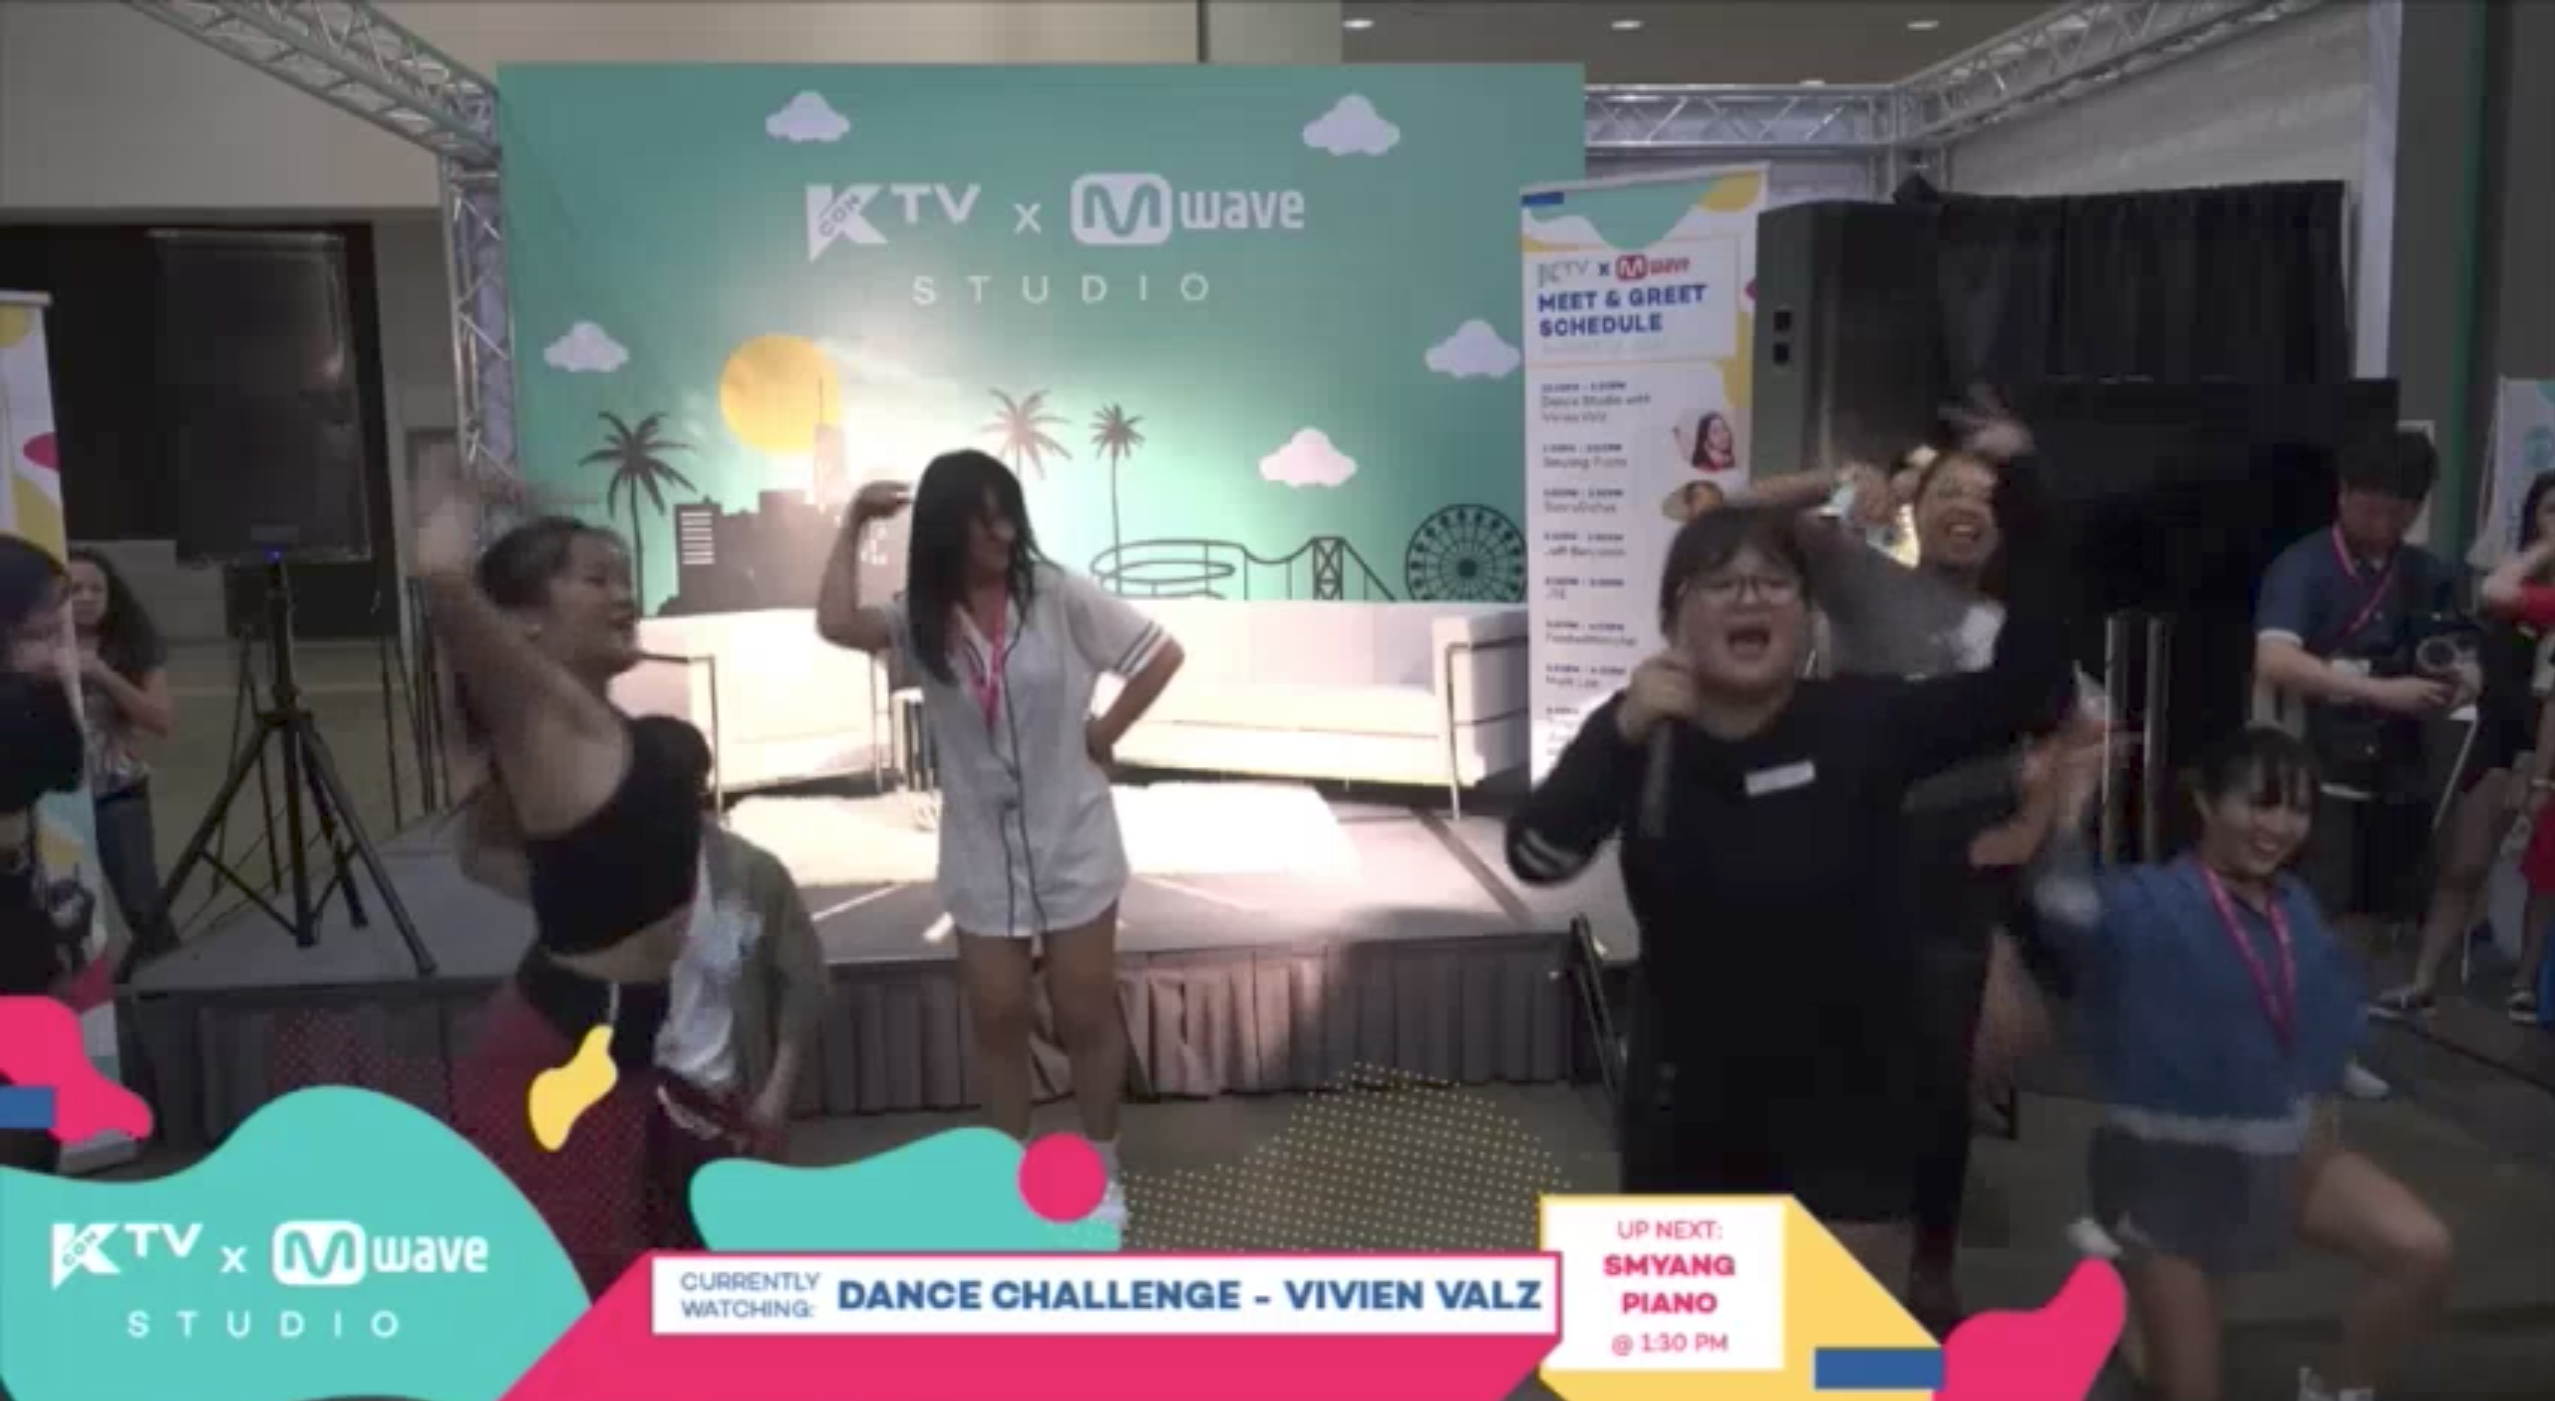 [#KCON17LA] Watch Attendees Take A 2x Fast/Slow K-Pop Dance Challenge with Vivien Valz!